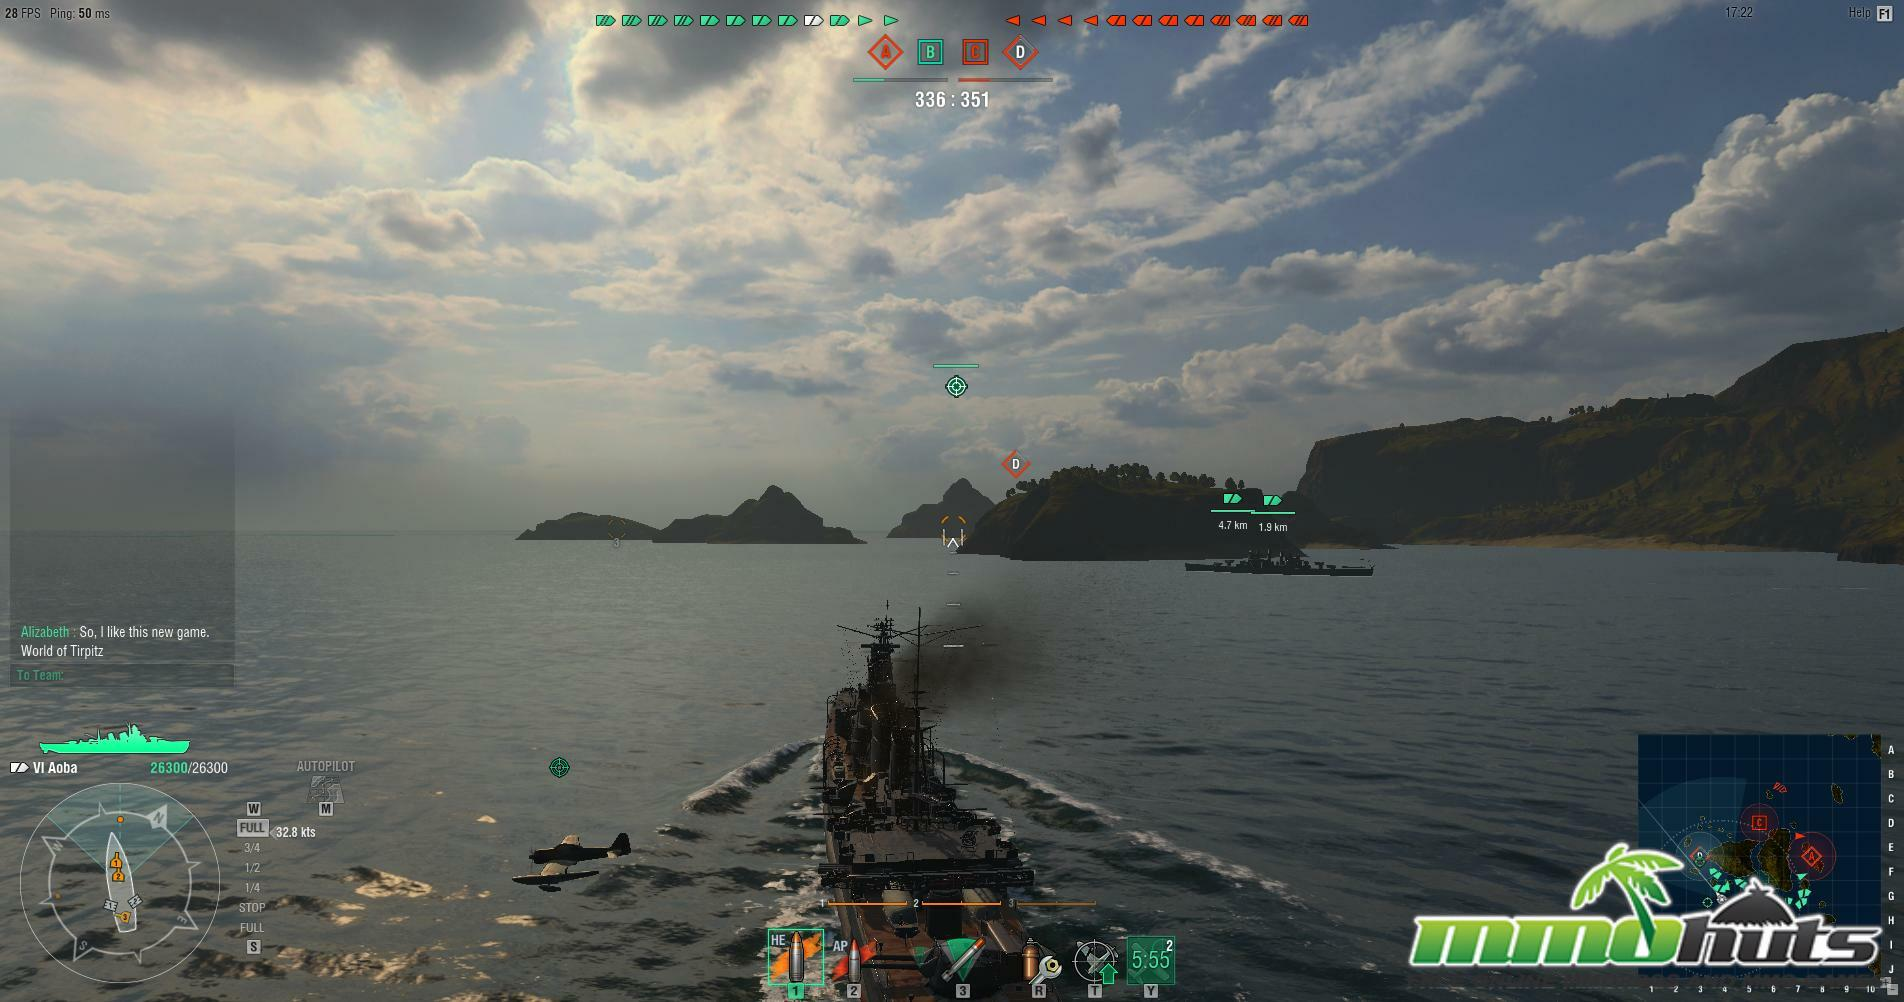 worldofwarships 2015-09-19 04-35-48-23